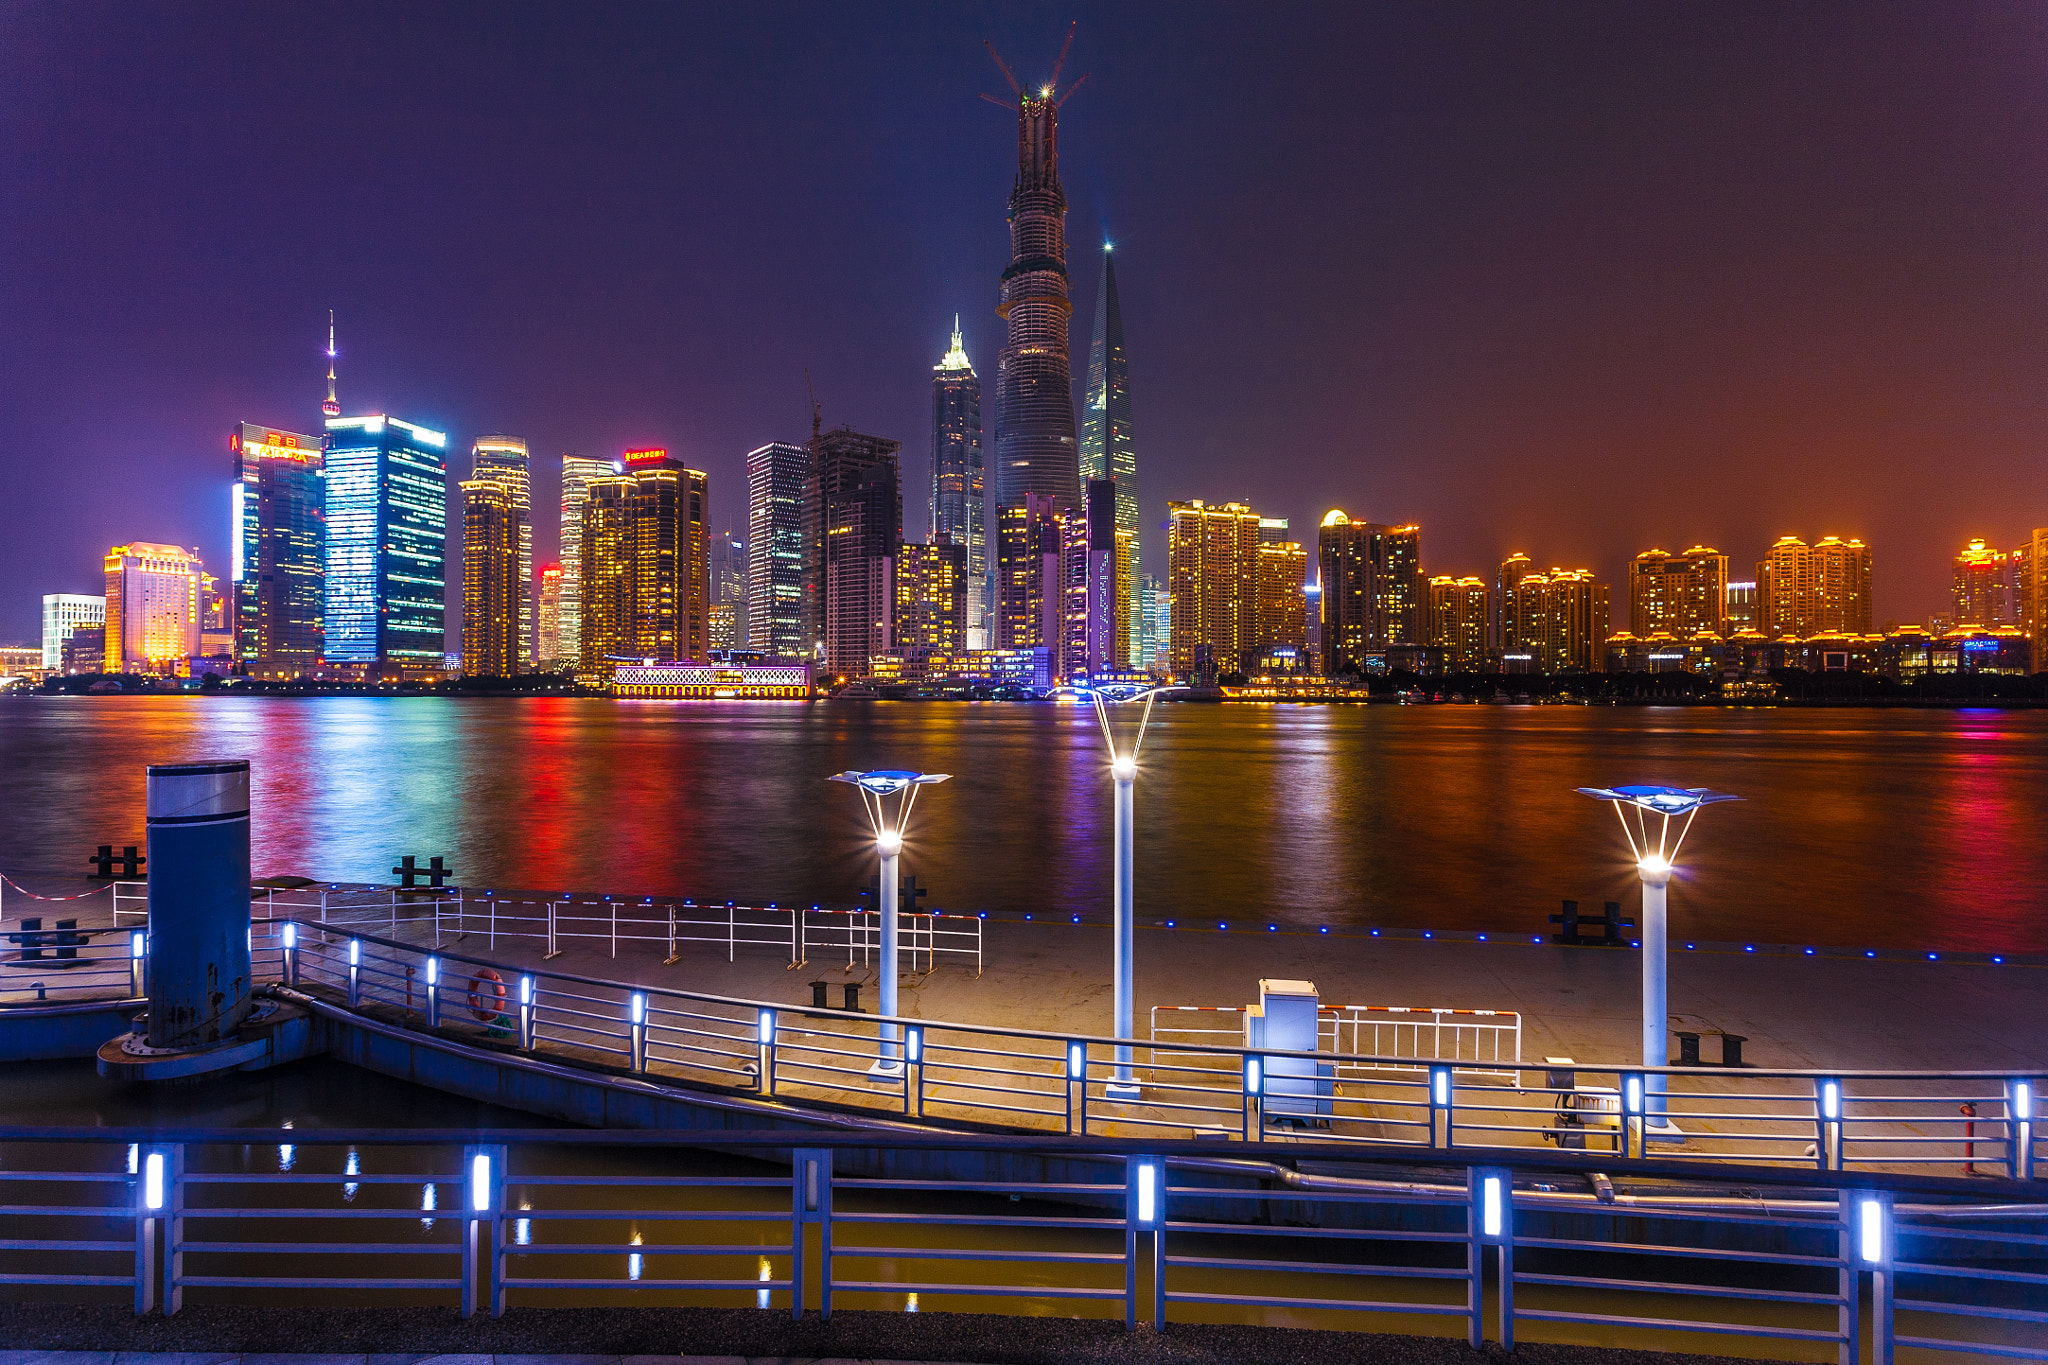 Photograph Shanghai 16th Pier at Night by Anakin Yang on 500px